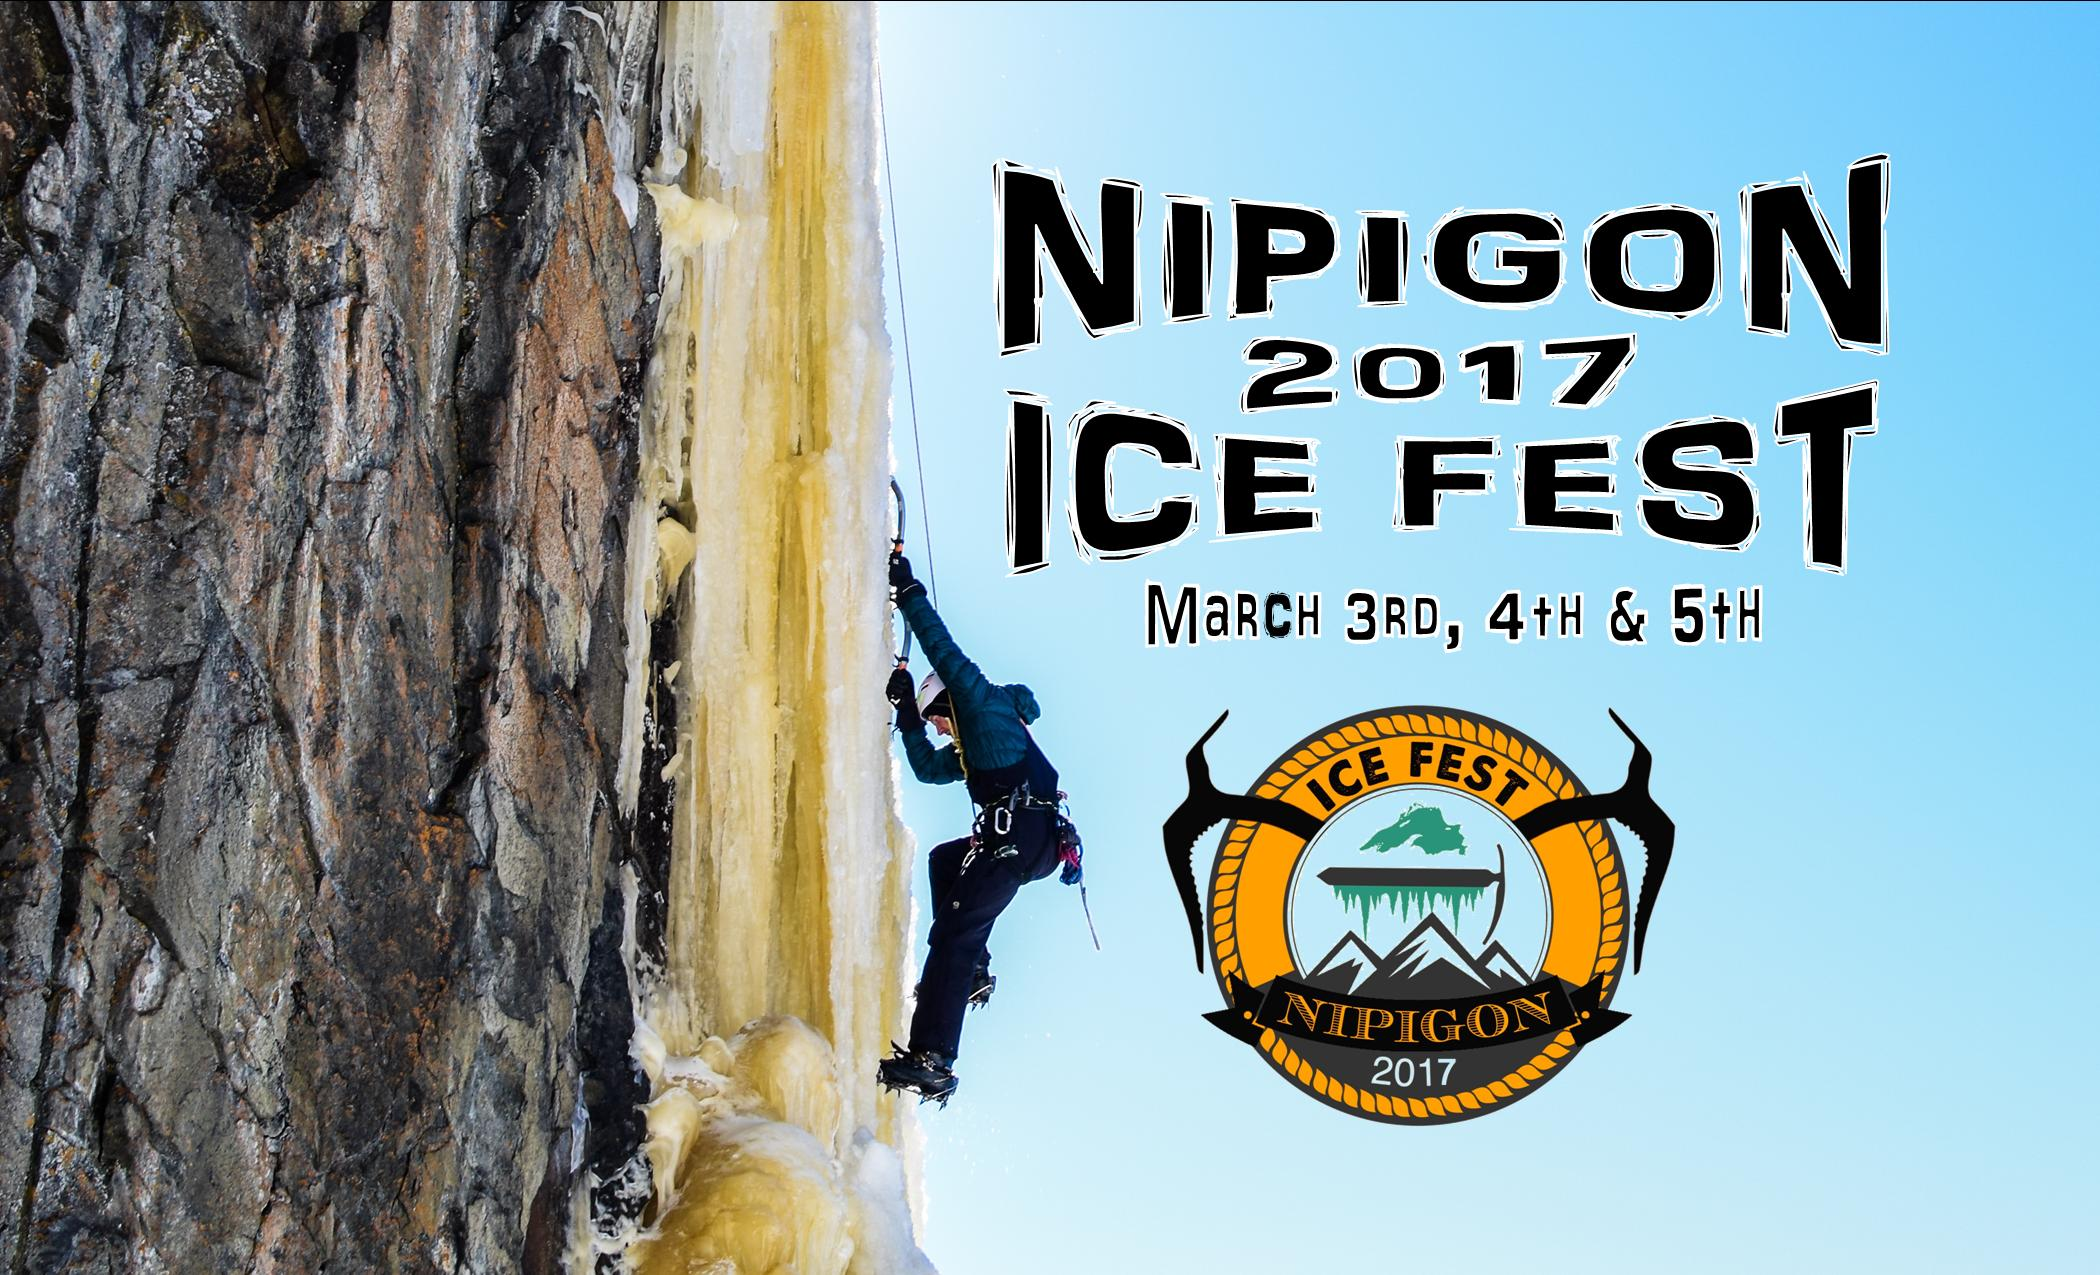 nipigon-ice-fest-2017-photo-by-paul-desaulniers